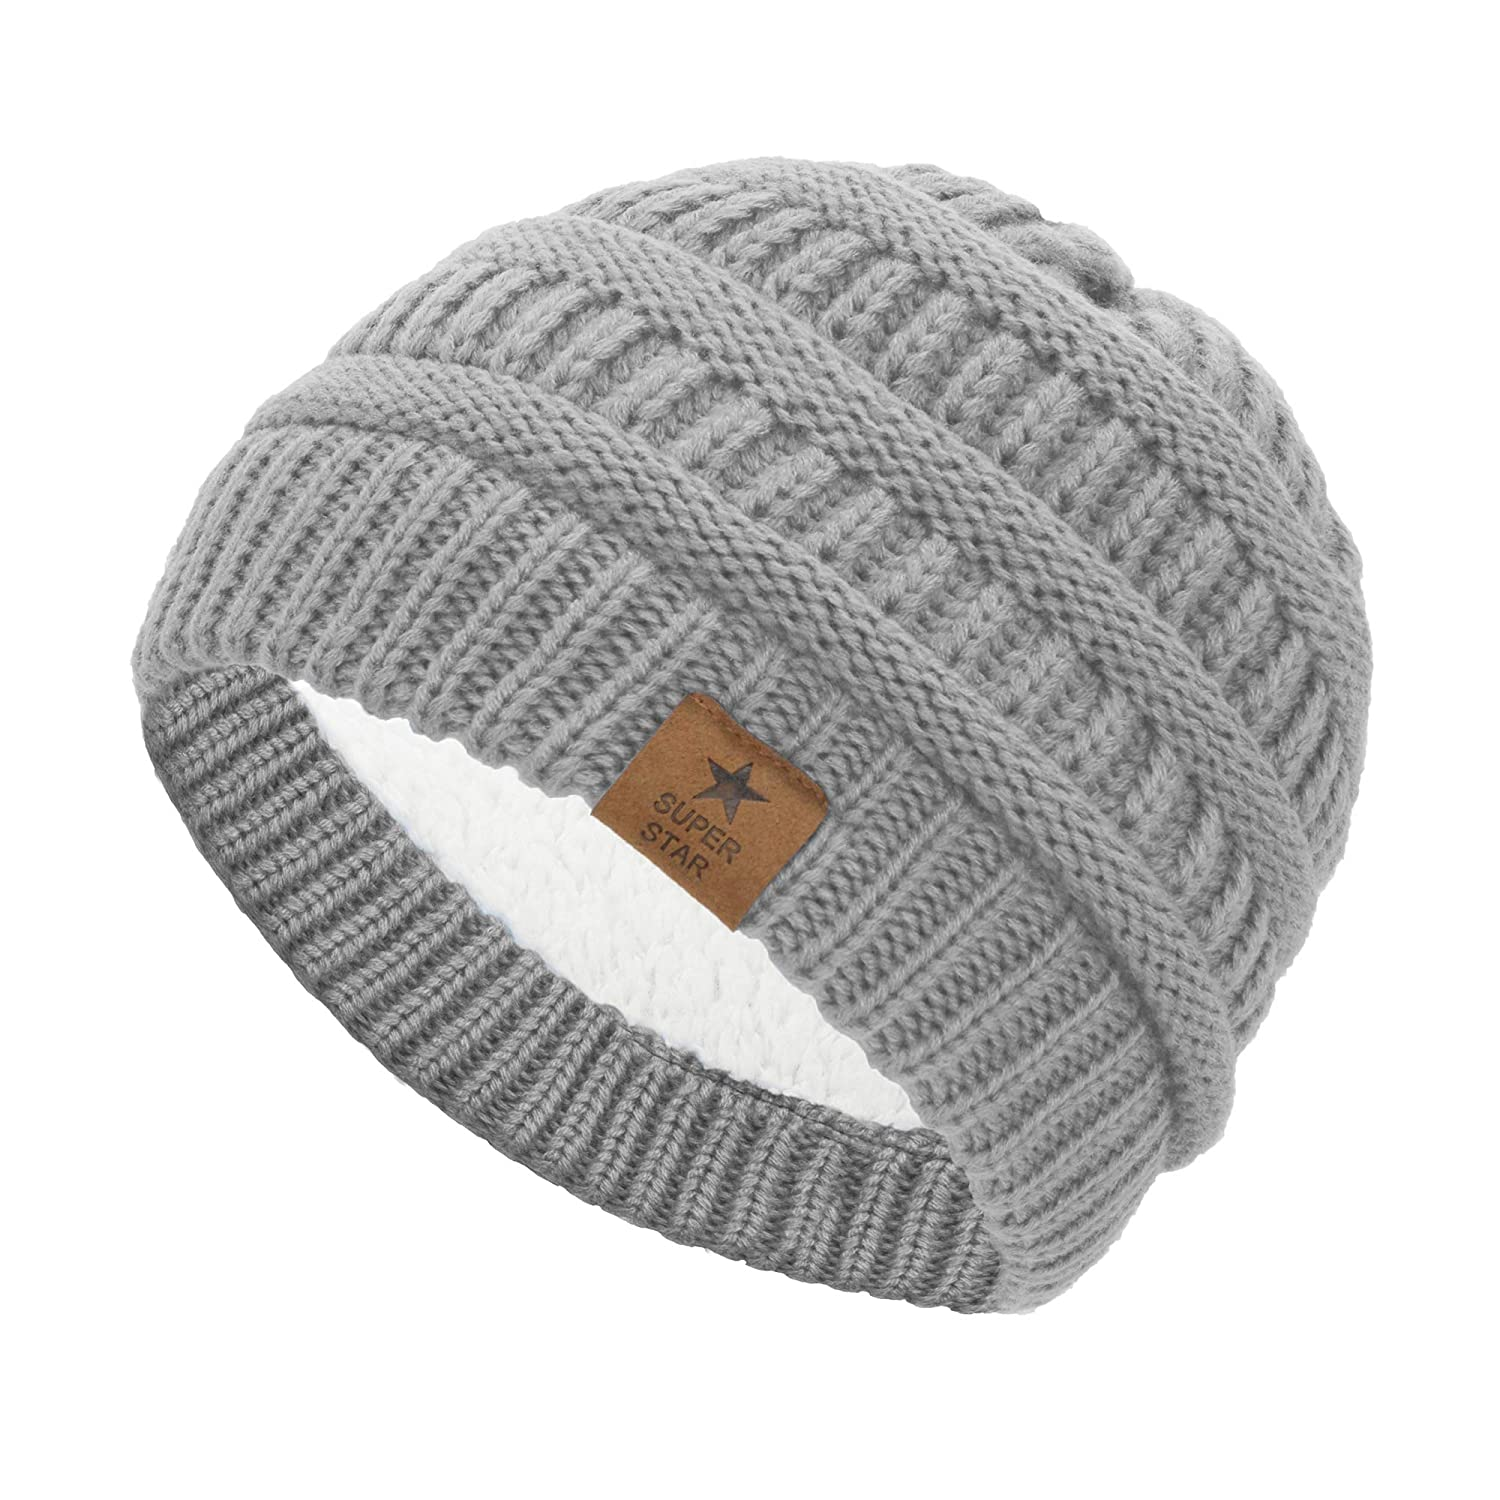 Amazon.com  Durio Soft Infant Toddler Winter Warm Thick Hat Knitted Fleece  Lined Baby Beanies for Boys Girls Winter Babies Caps 1 Pack Beige  Clothing 66e5d517e81